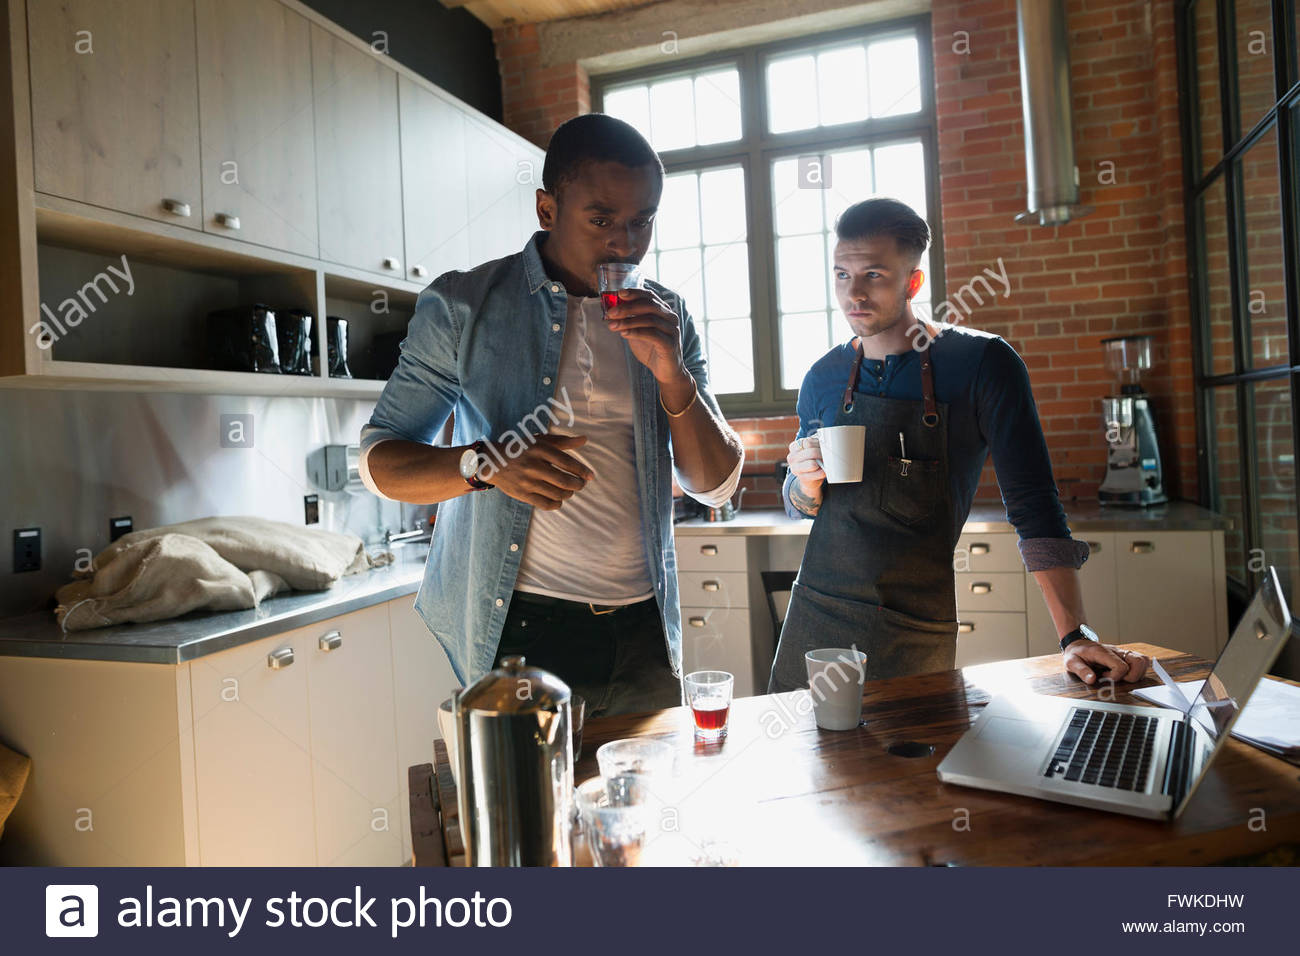 Entrepreneurial coffee roaster smelling coffee in kitchen - Stock Image